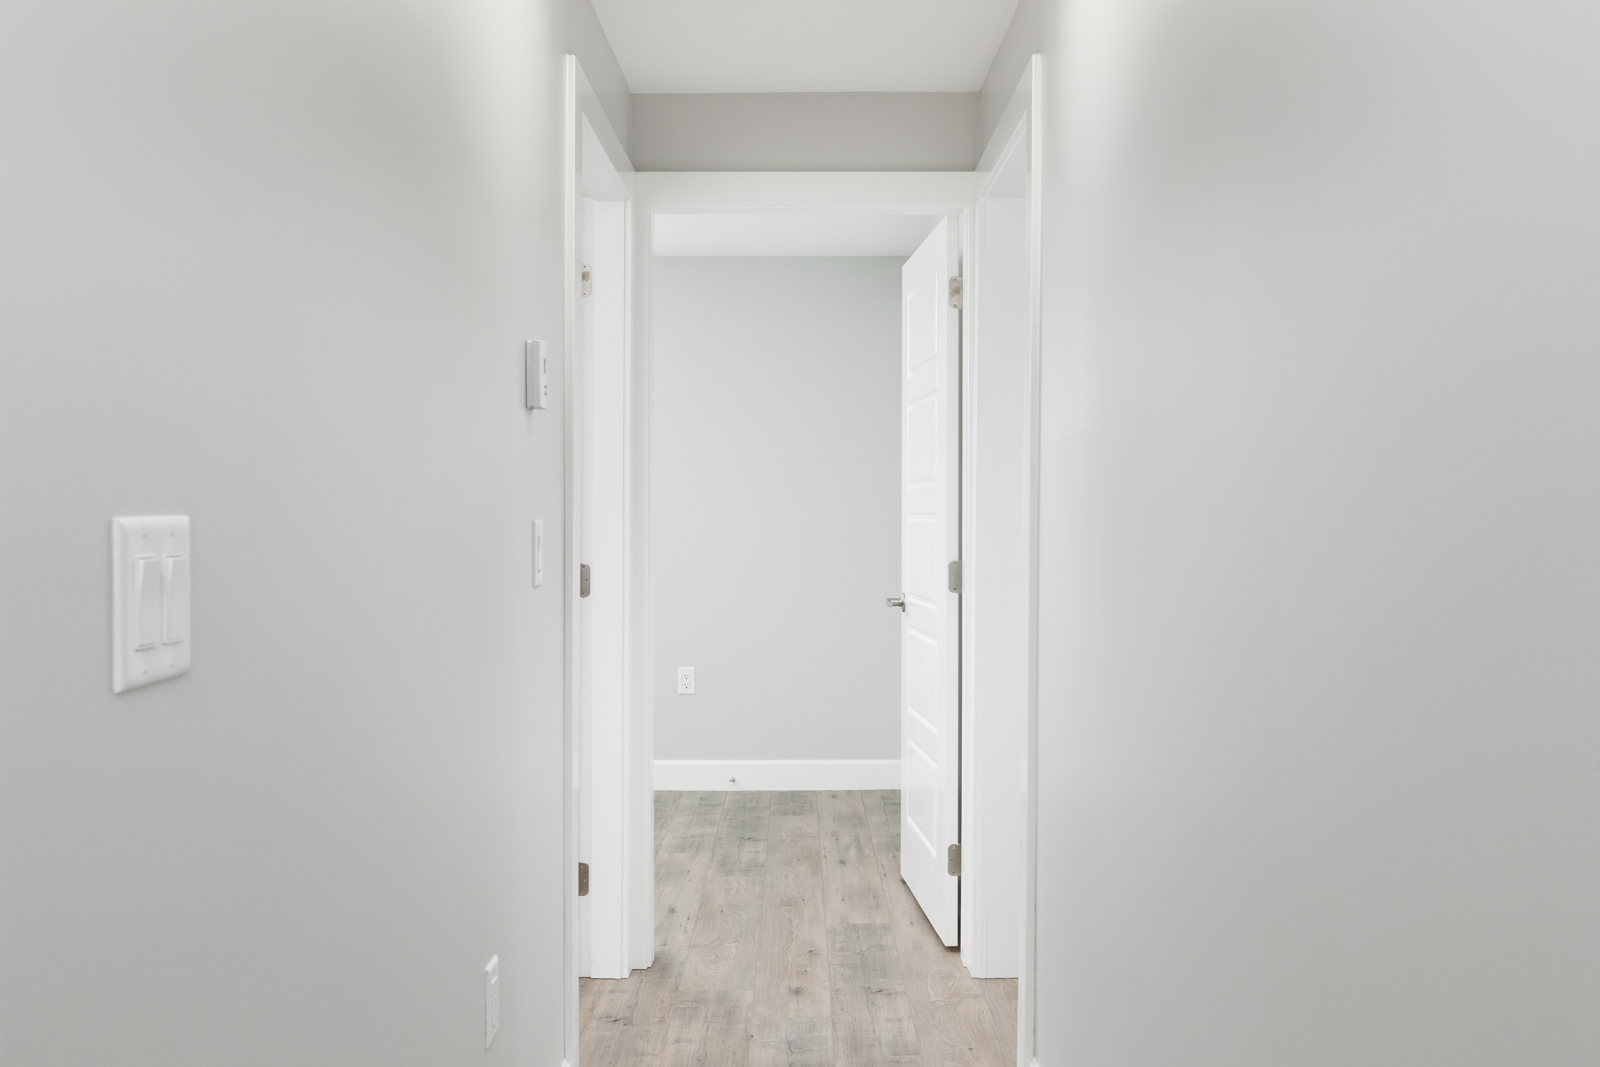 Interior hallway of Vancouver unfurnished rental housing listed by Birds Nest Properties.